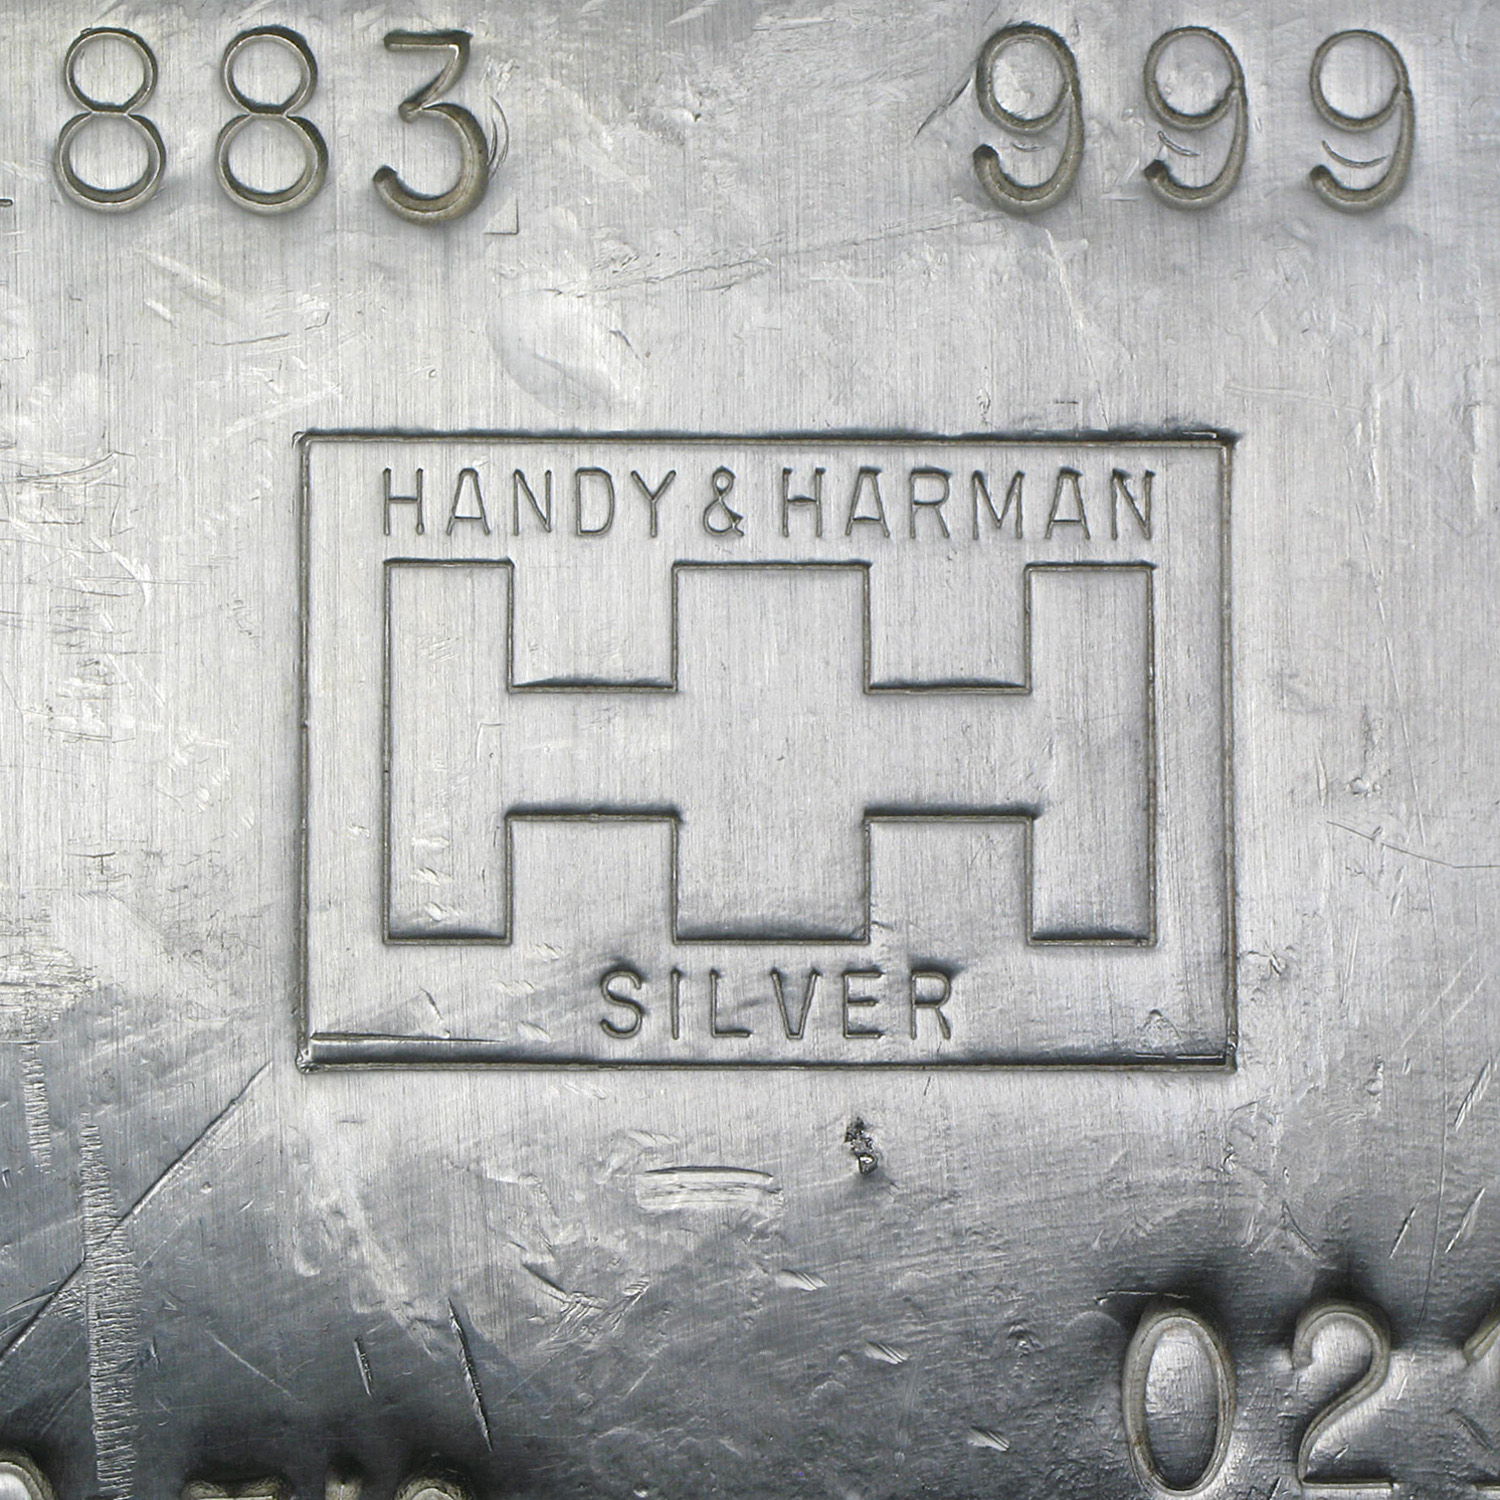 100 oz Silver Bar - Handy & Harmon